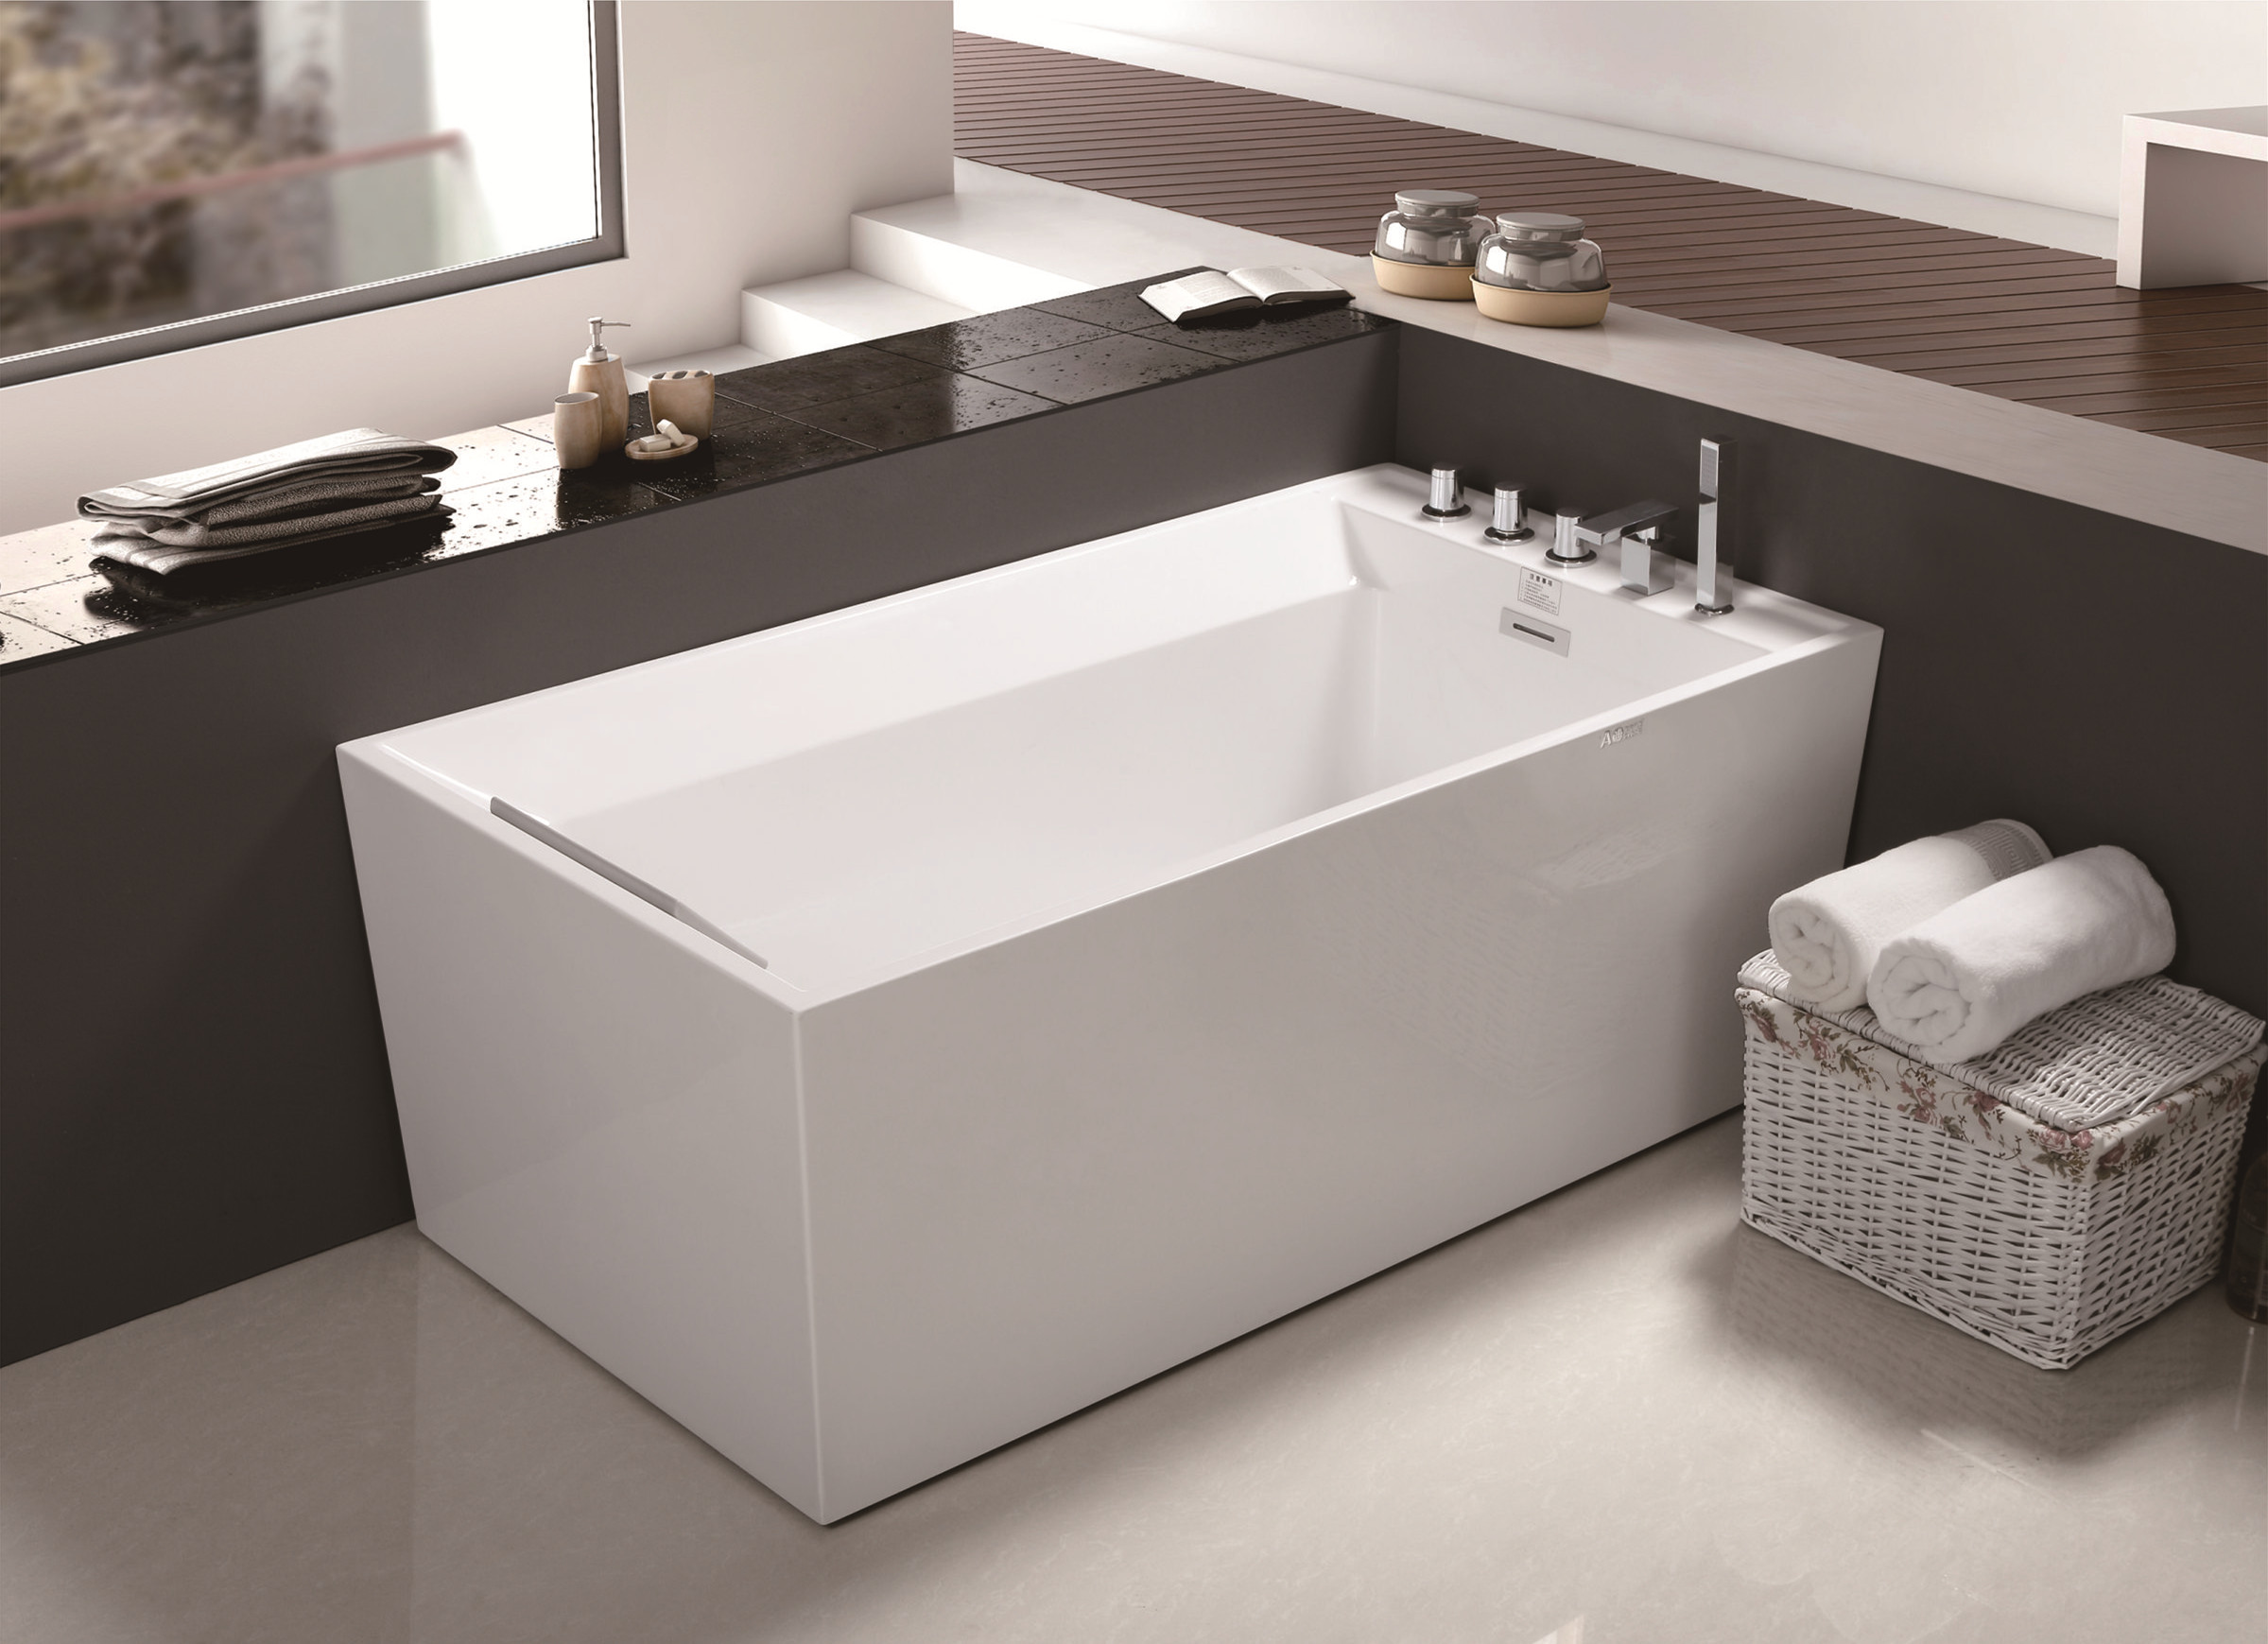 MEC-3111 -Simple Standard Seamless Rectangle Freestanding Acrylic Bathtub.jpg